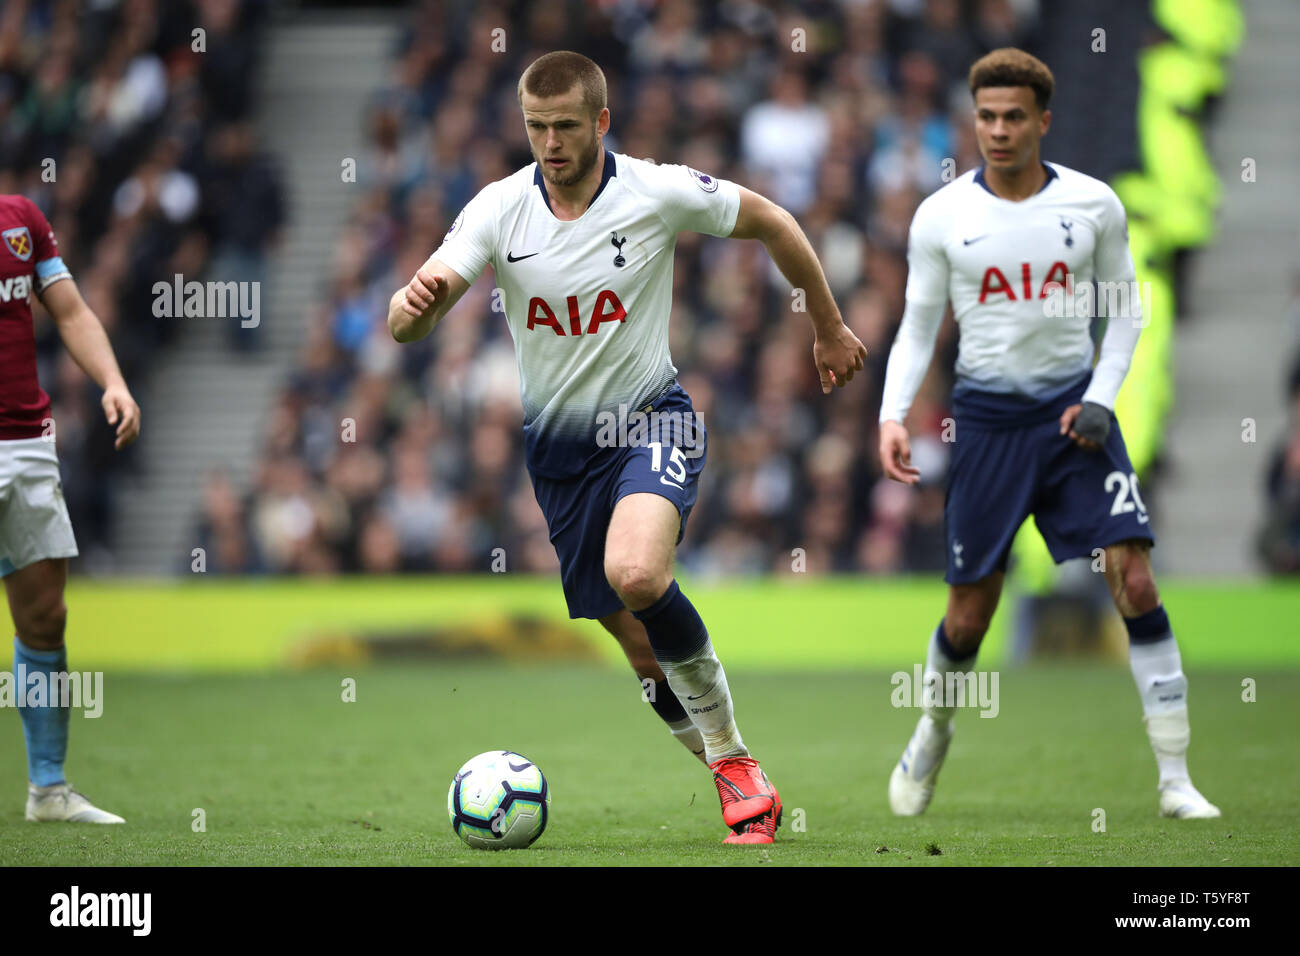 London, UK. 27th Apr 2019. Eric Dier (TH) at the Tottenham Hotspur v West Ham United English Premier League match, at The Tottenham Hotspur Stadium, London, UK on April 27, 2019. **Editorial use only, license required for commercial use. No use in betting, games or a single club/league/player publications** Credit: Paul Marriott/Alamy Live News - Stock Image